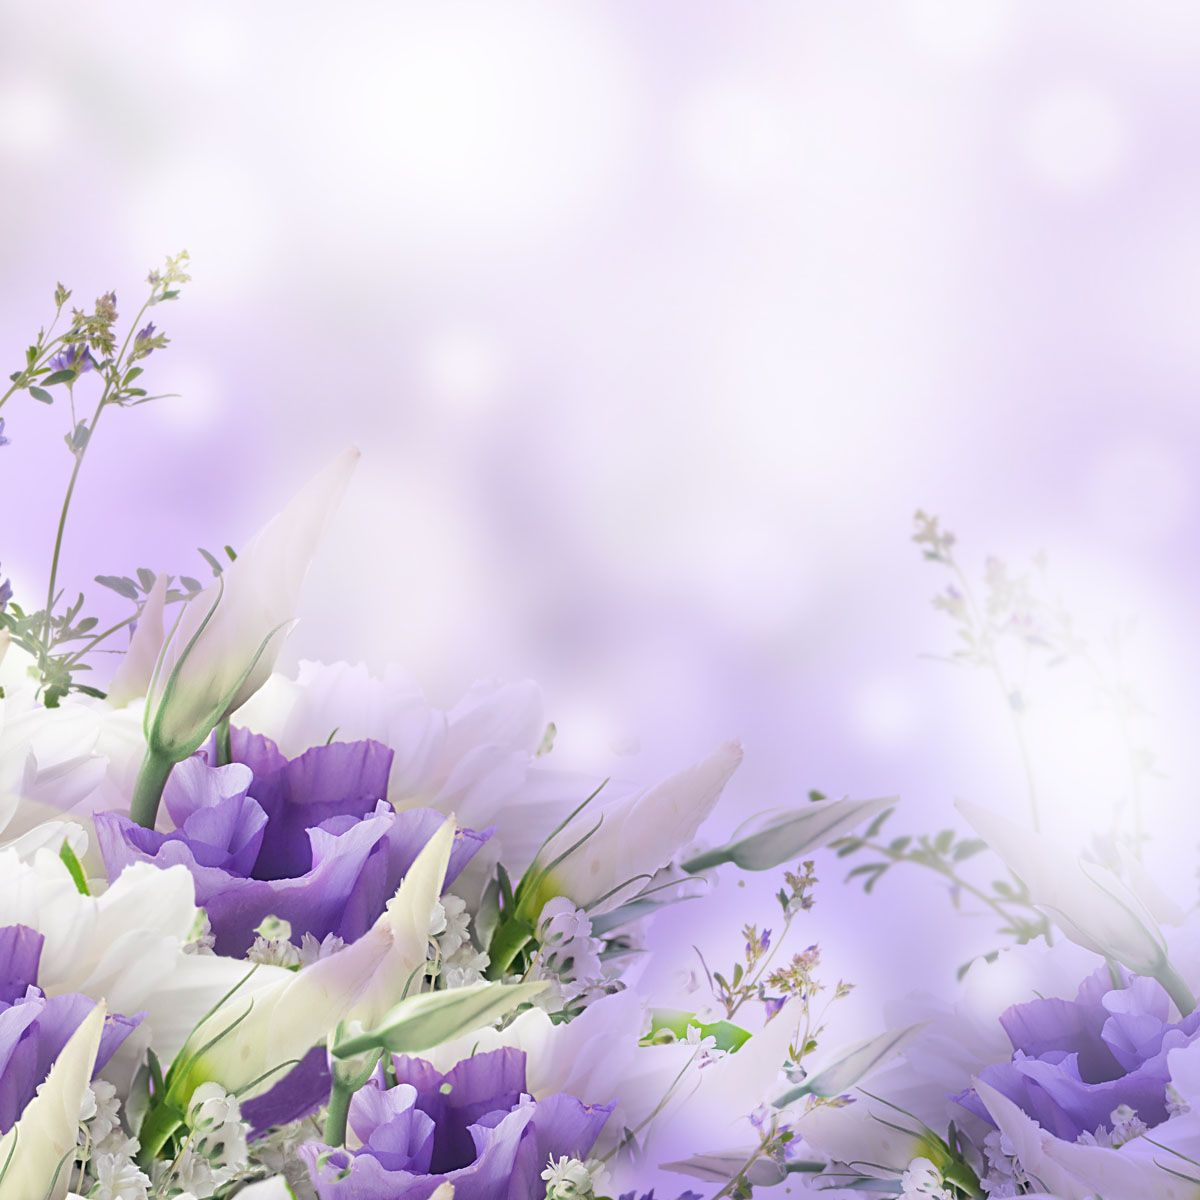 Purple Violets Floristry is based in Bristol, we are